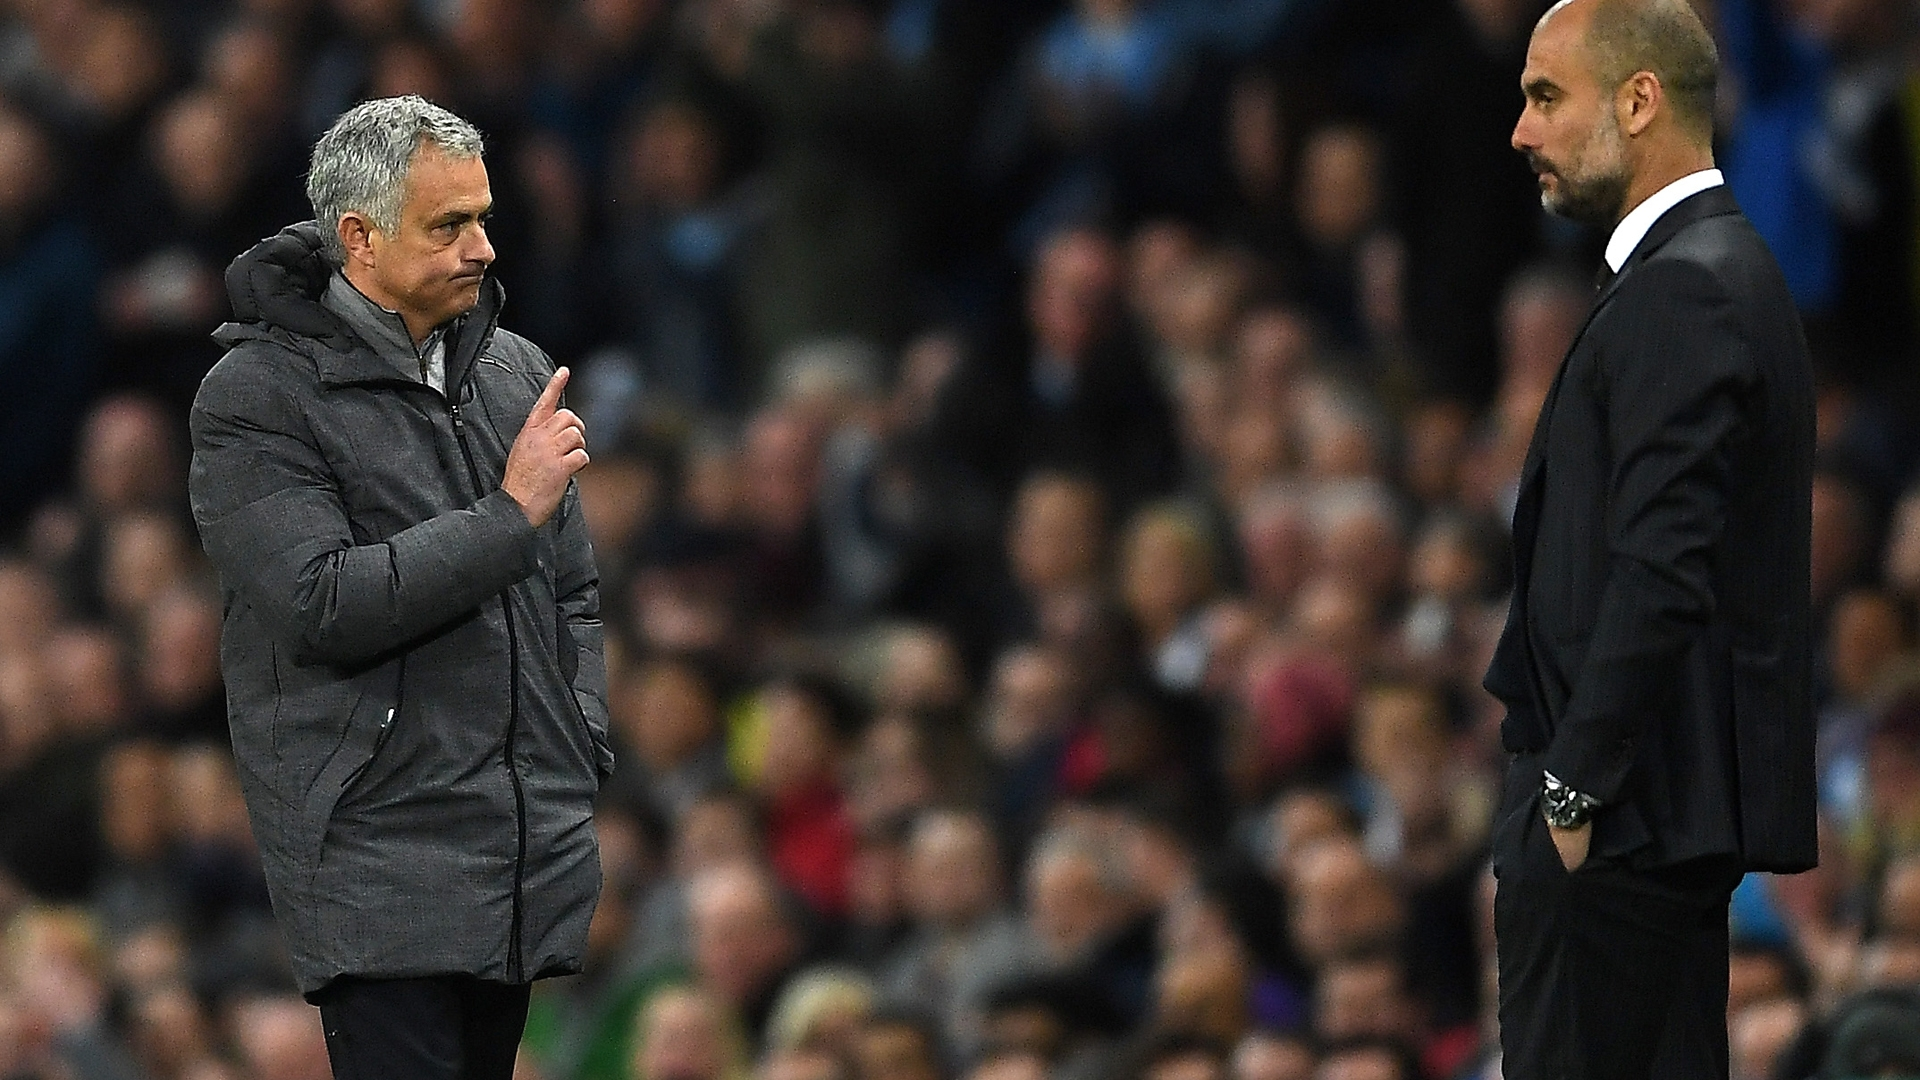 Mourinho says that now things have changed. It's not that enough time has passed, but their teams are also not the only important sides in the league as was often the case in Spain (if you discount Atletico Madrid at times).